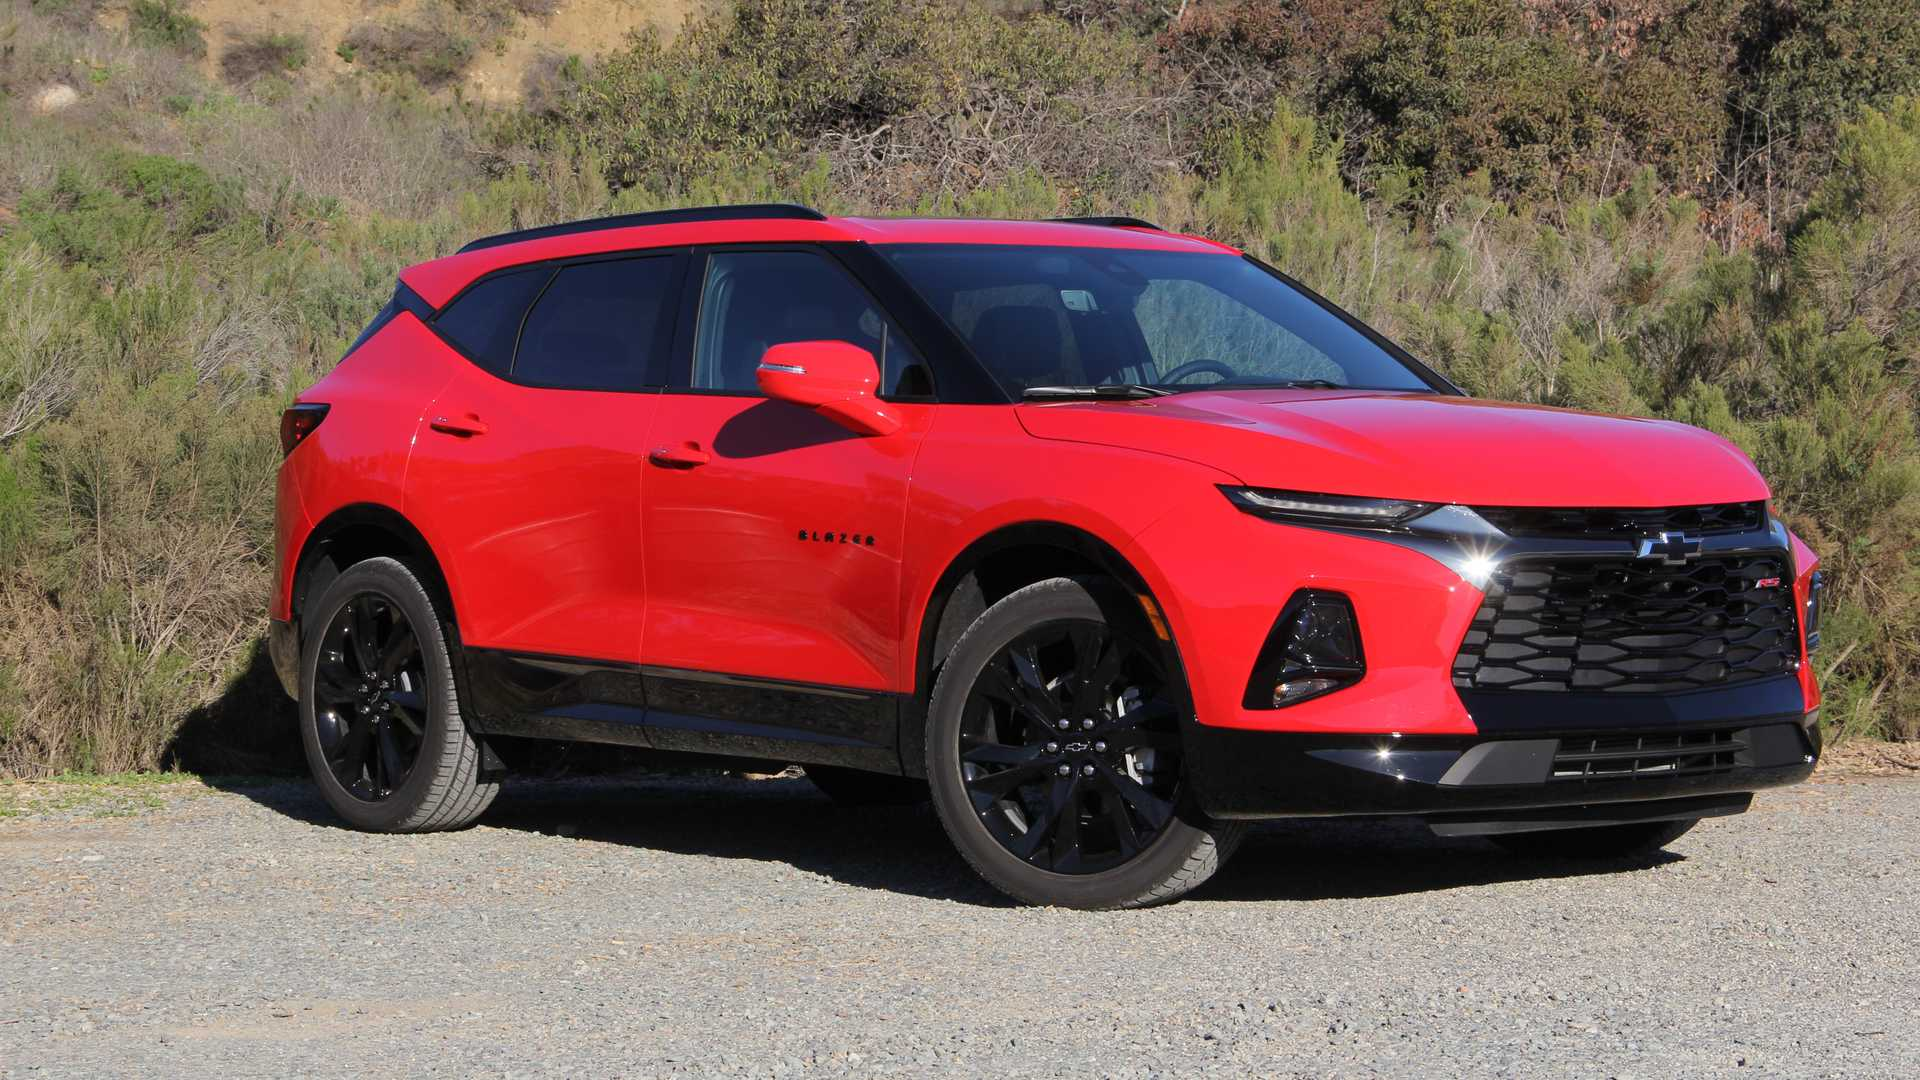 15 Concept of Chevrolet Blazer 2020 Pictures by Chevrolet Blazer 2020